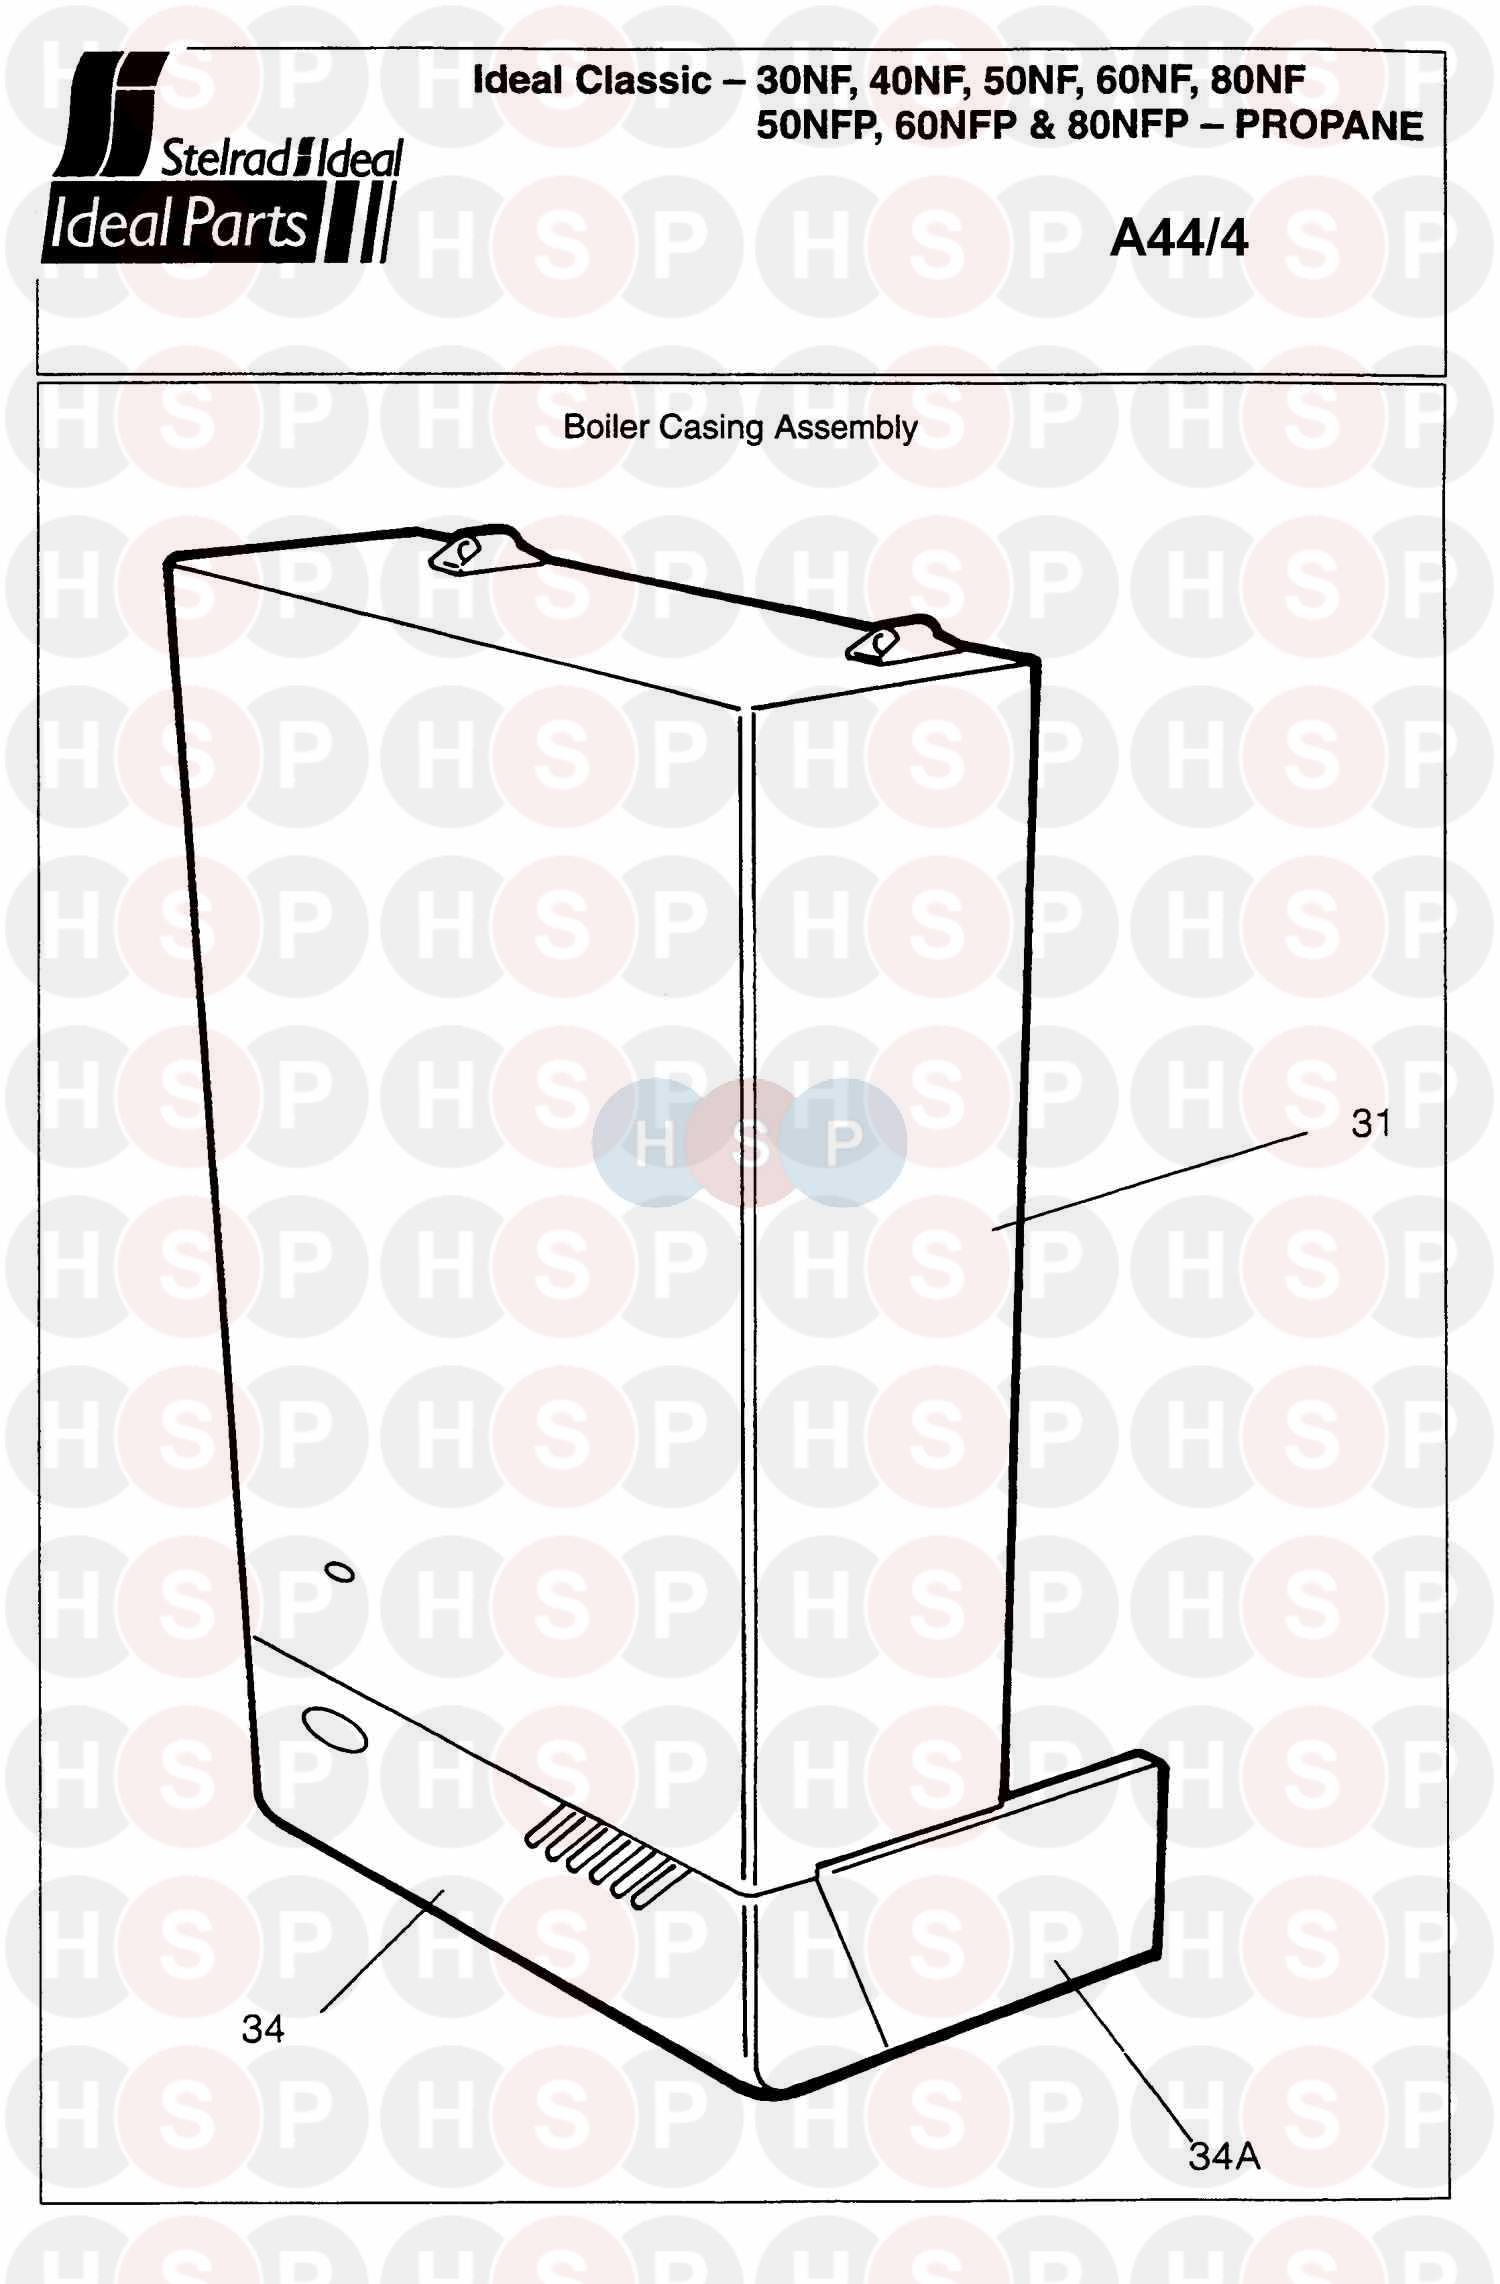 ideal classic 40nf  boiler casing  diagram